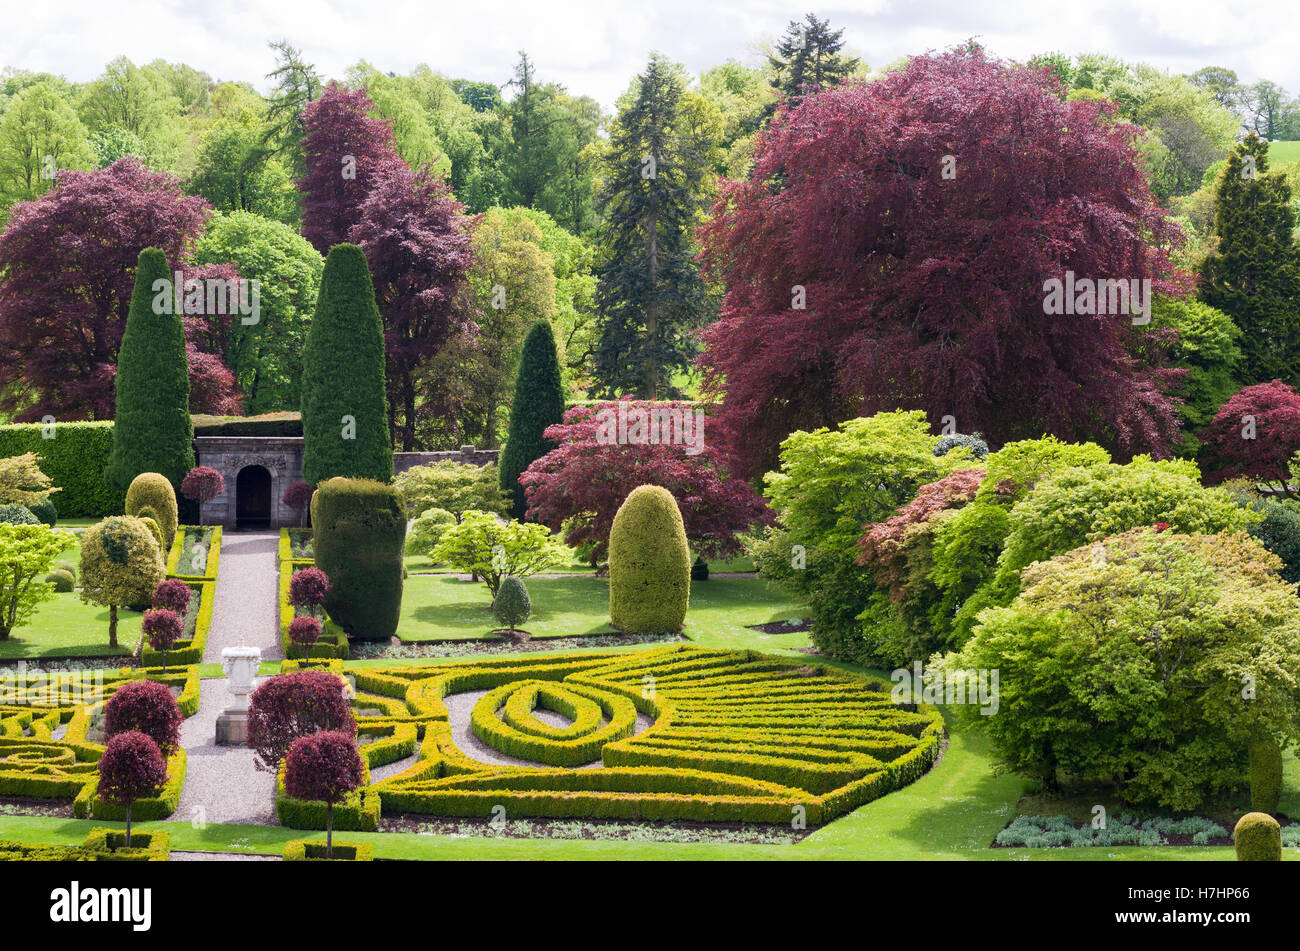 Marvelous Drummond Castle And Gardens In Crieff Perthshire Scotland Uk Stock  With Engaging The Copper Beech Tree Planted By Queen Victoria In Gardens Of Drummond  Castle Gardens Muthill With Appealing Small Garden Plans Also Forbury Gardens Day Nursery In Addition Garden Truck And Garden Jerusalem As Well As Metal Flowers For Garden Additionally How To Keep Cats Out Your Garden From Alamycom With   Engaging Drummond Castle And Gardens In Crieff Perthshire Scotland Uk Stock  With Appealing The Copper Beech Tree Planted By Queen Victoria In Gardens Of Drummond  Castle Gardens Muthill And Marvelous Small Garden Plans Also Forbury Gardens Day Nursery In Addition Garden Truck From Alamycom